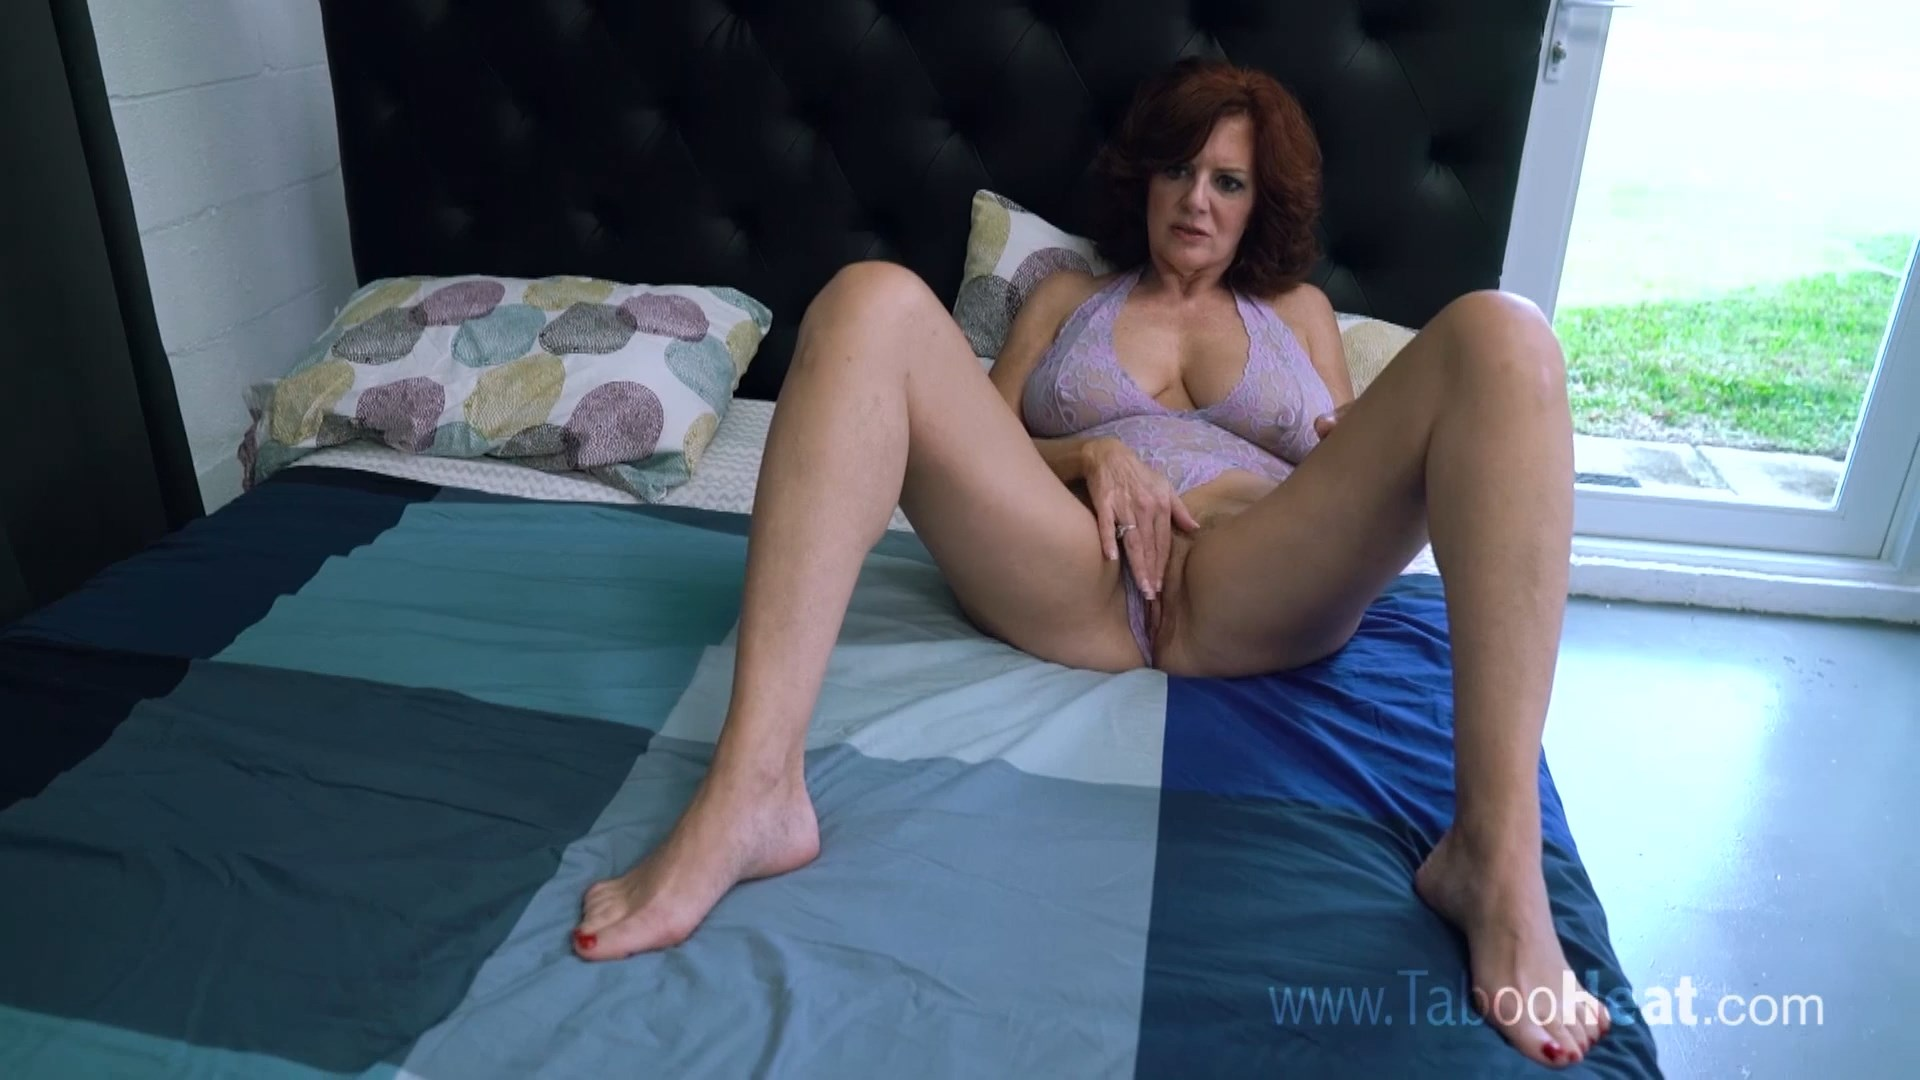 Bare Back Studios - Mommy Continues To Learn Her Place - Scene Four: Creampie - Andi James